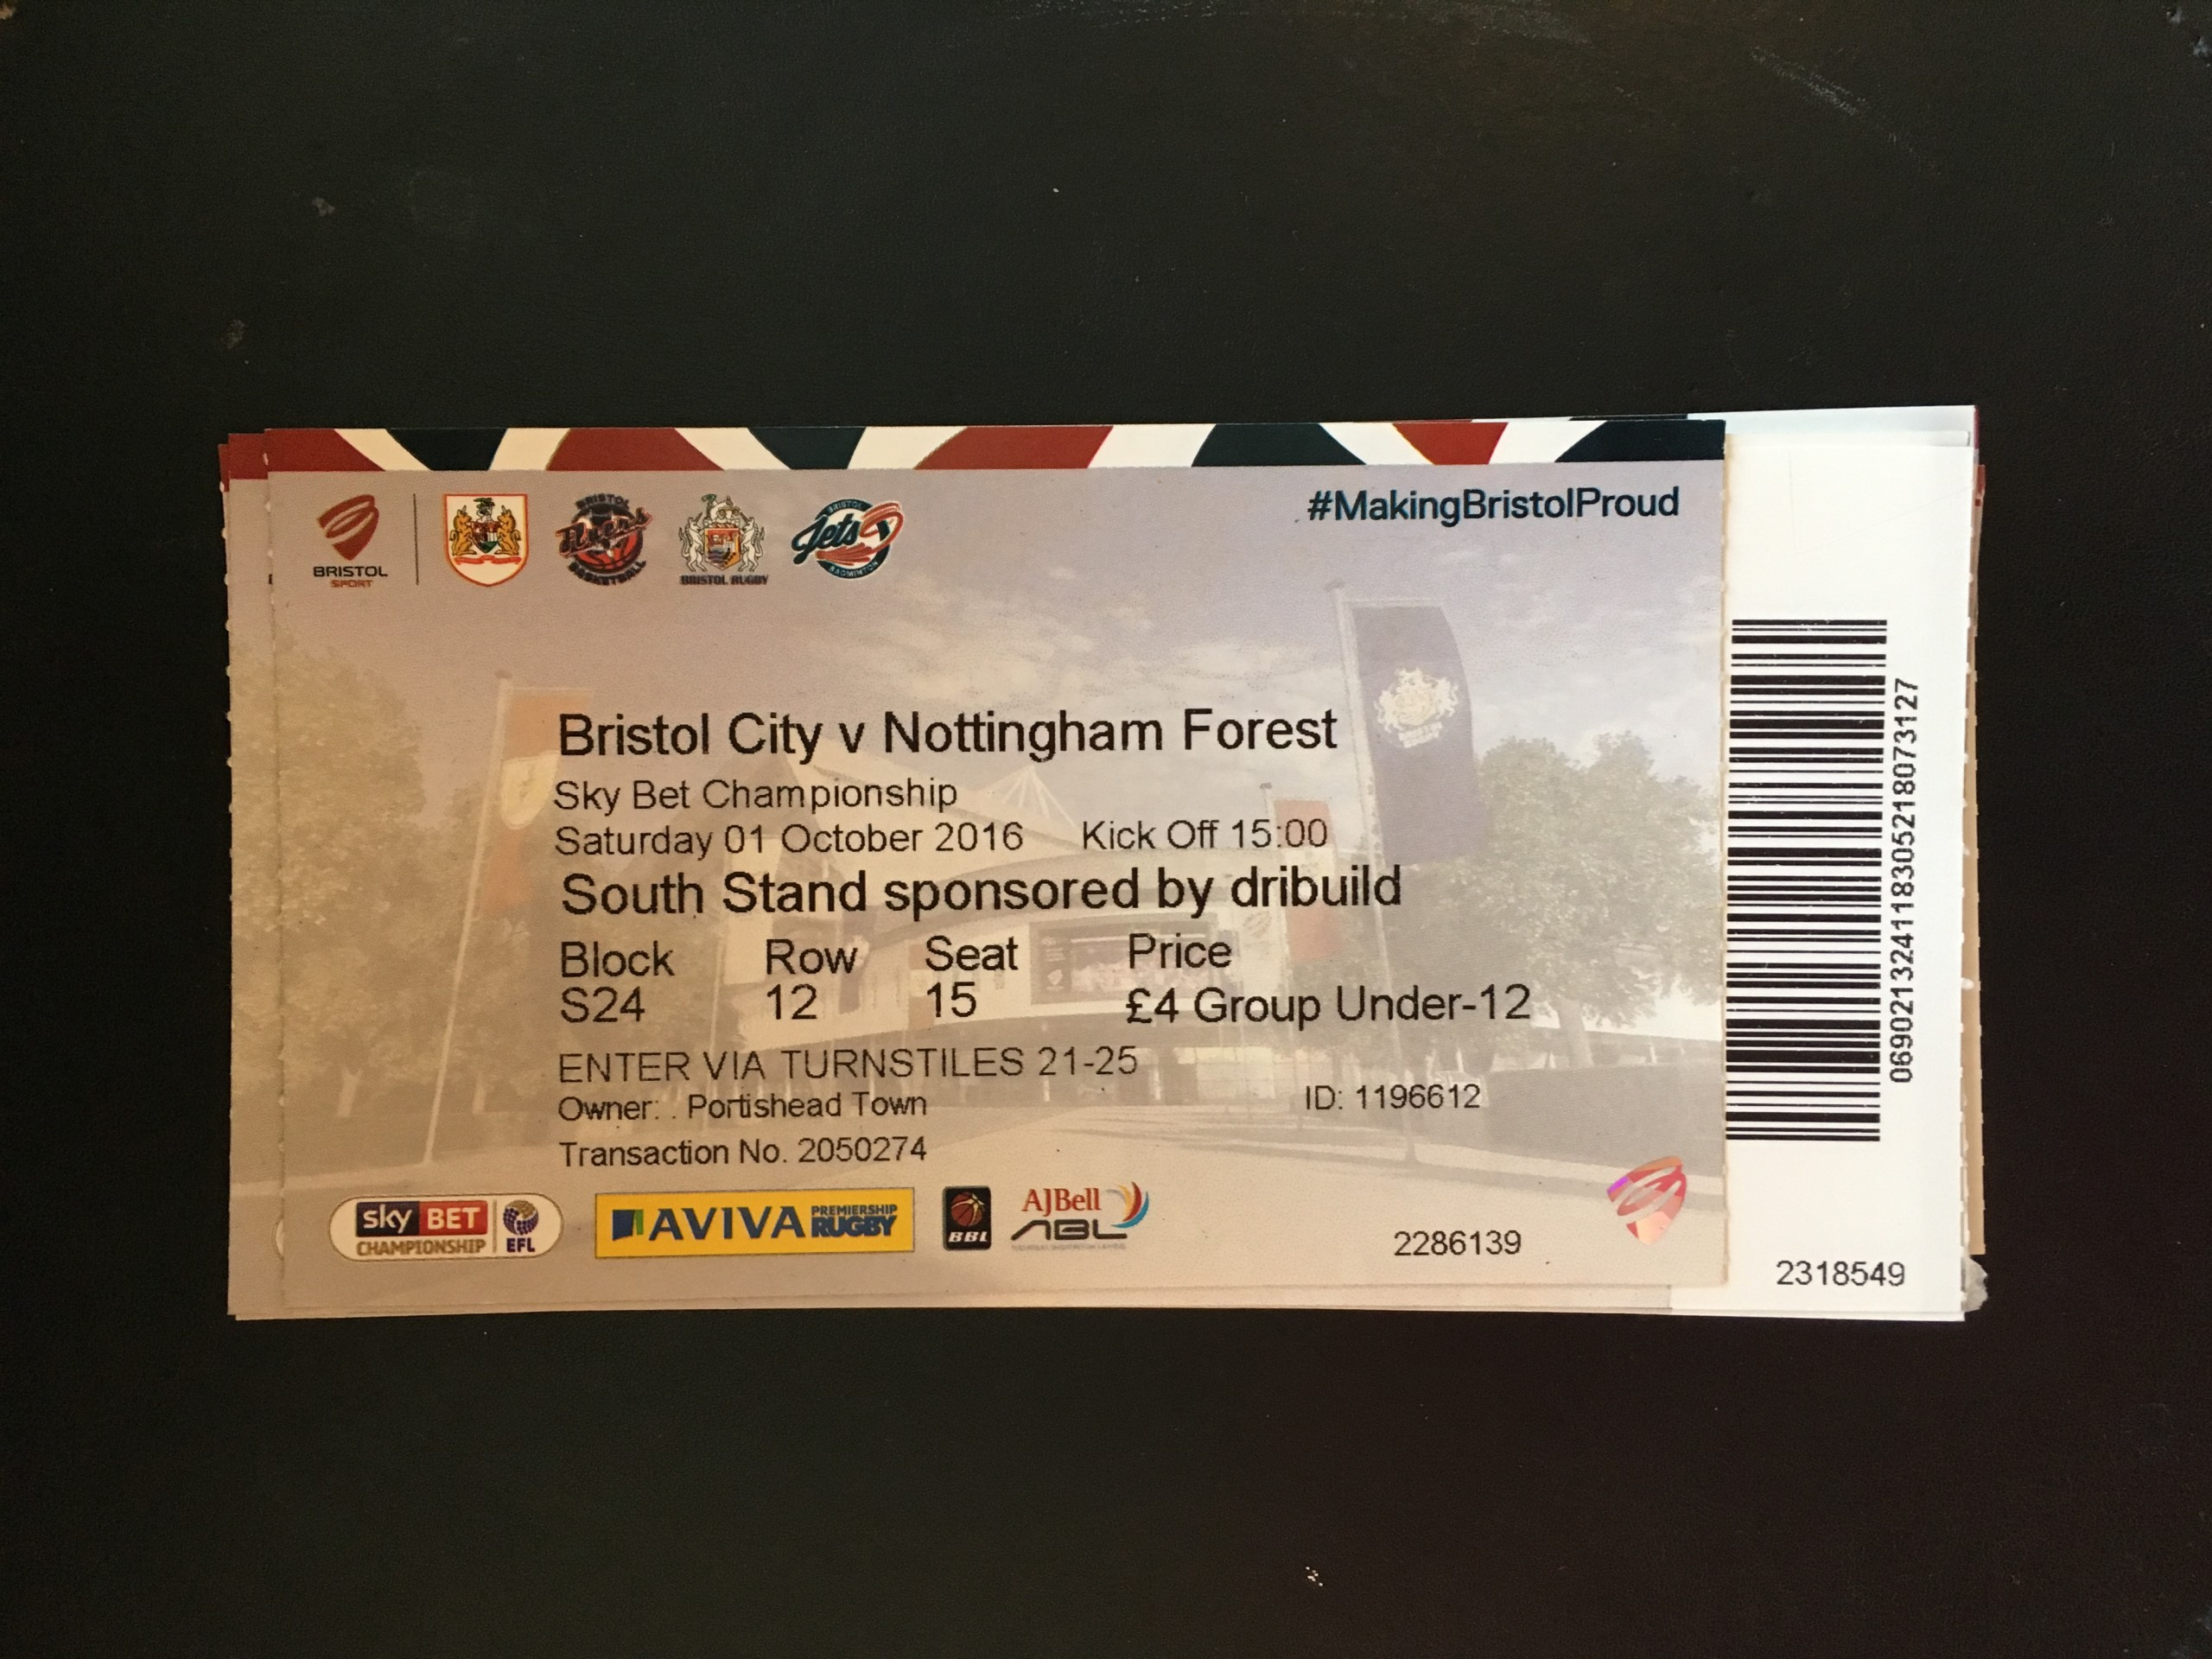 Bristol City v Nottingham Forest 01-10-2016 Ticket